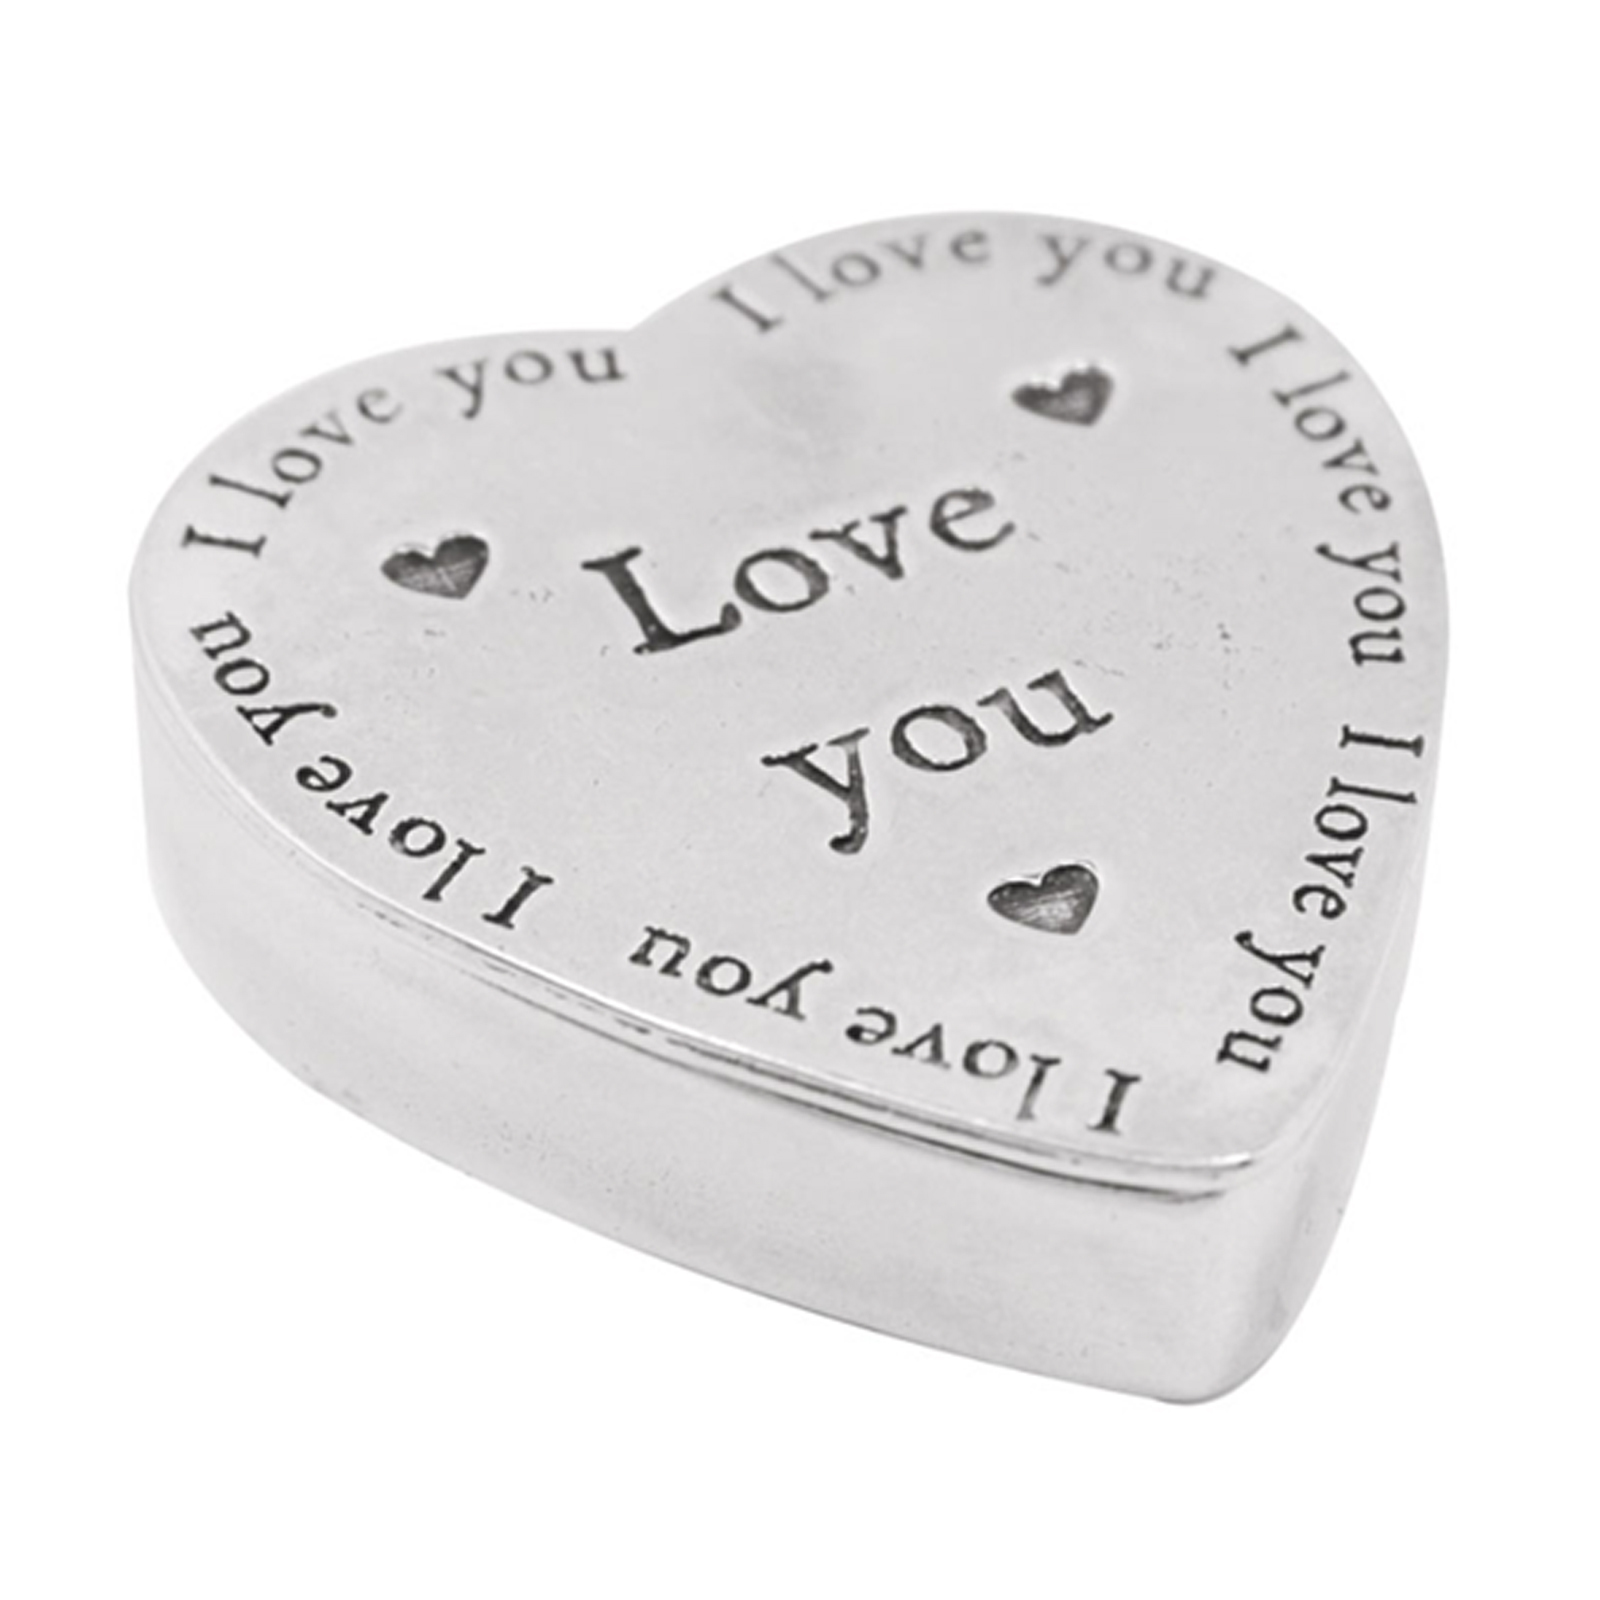 Pewter Heart Shaped Trinket Box - I Love You by The English Pewter Company